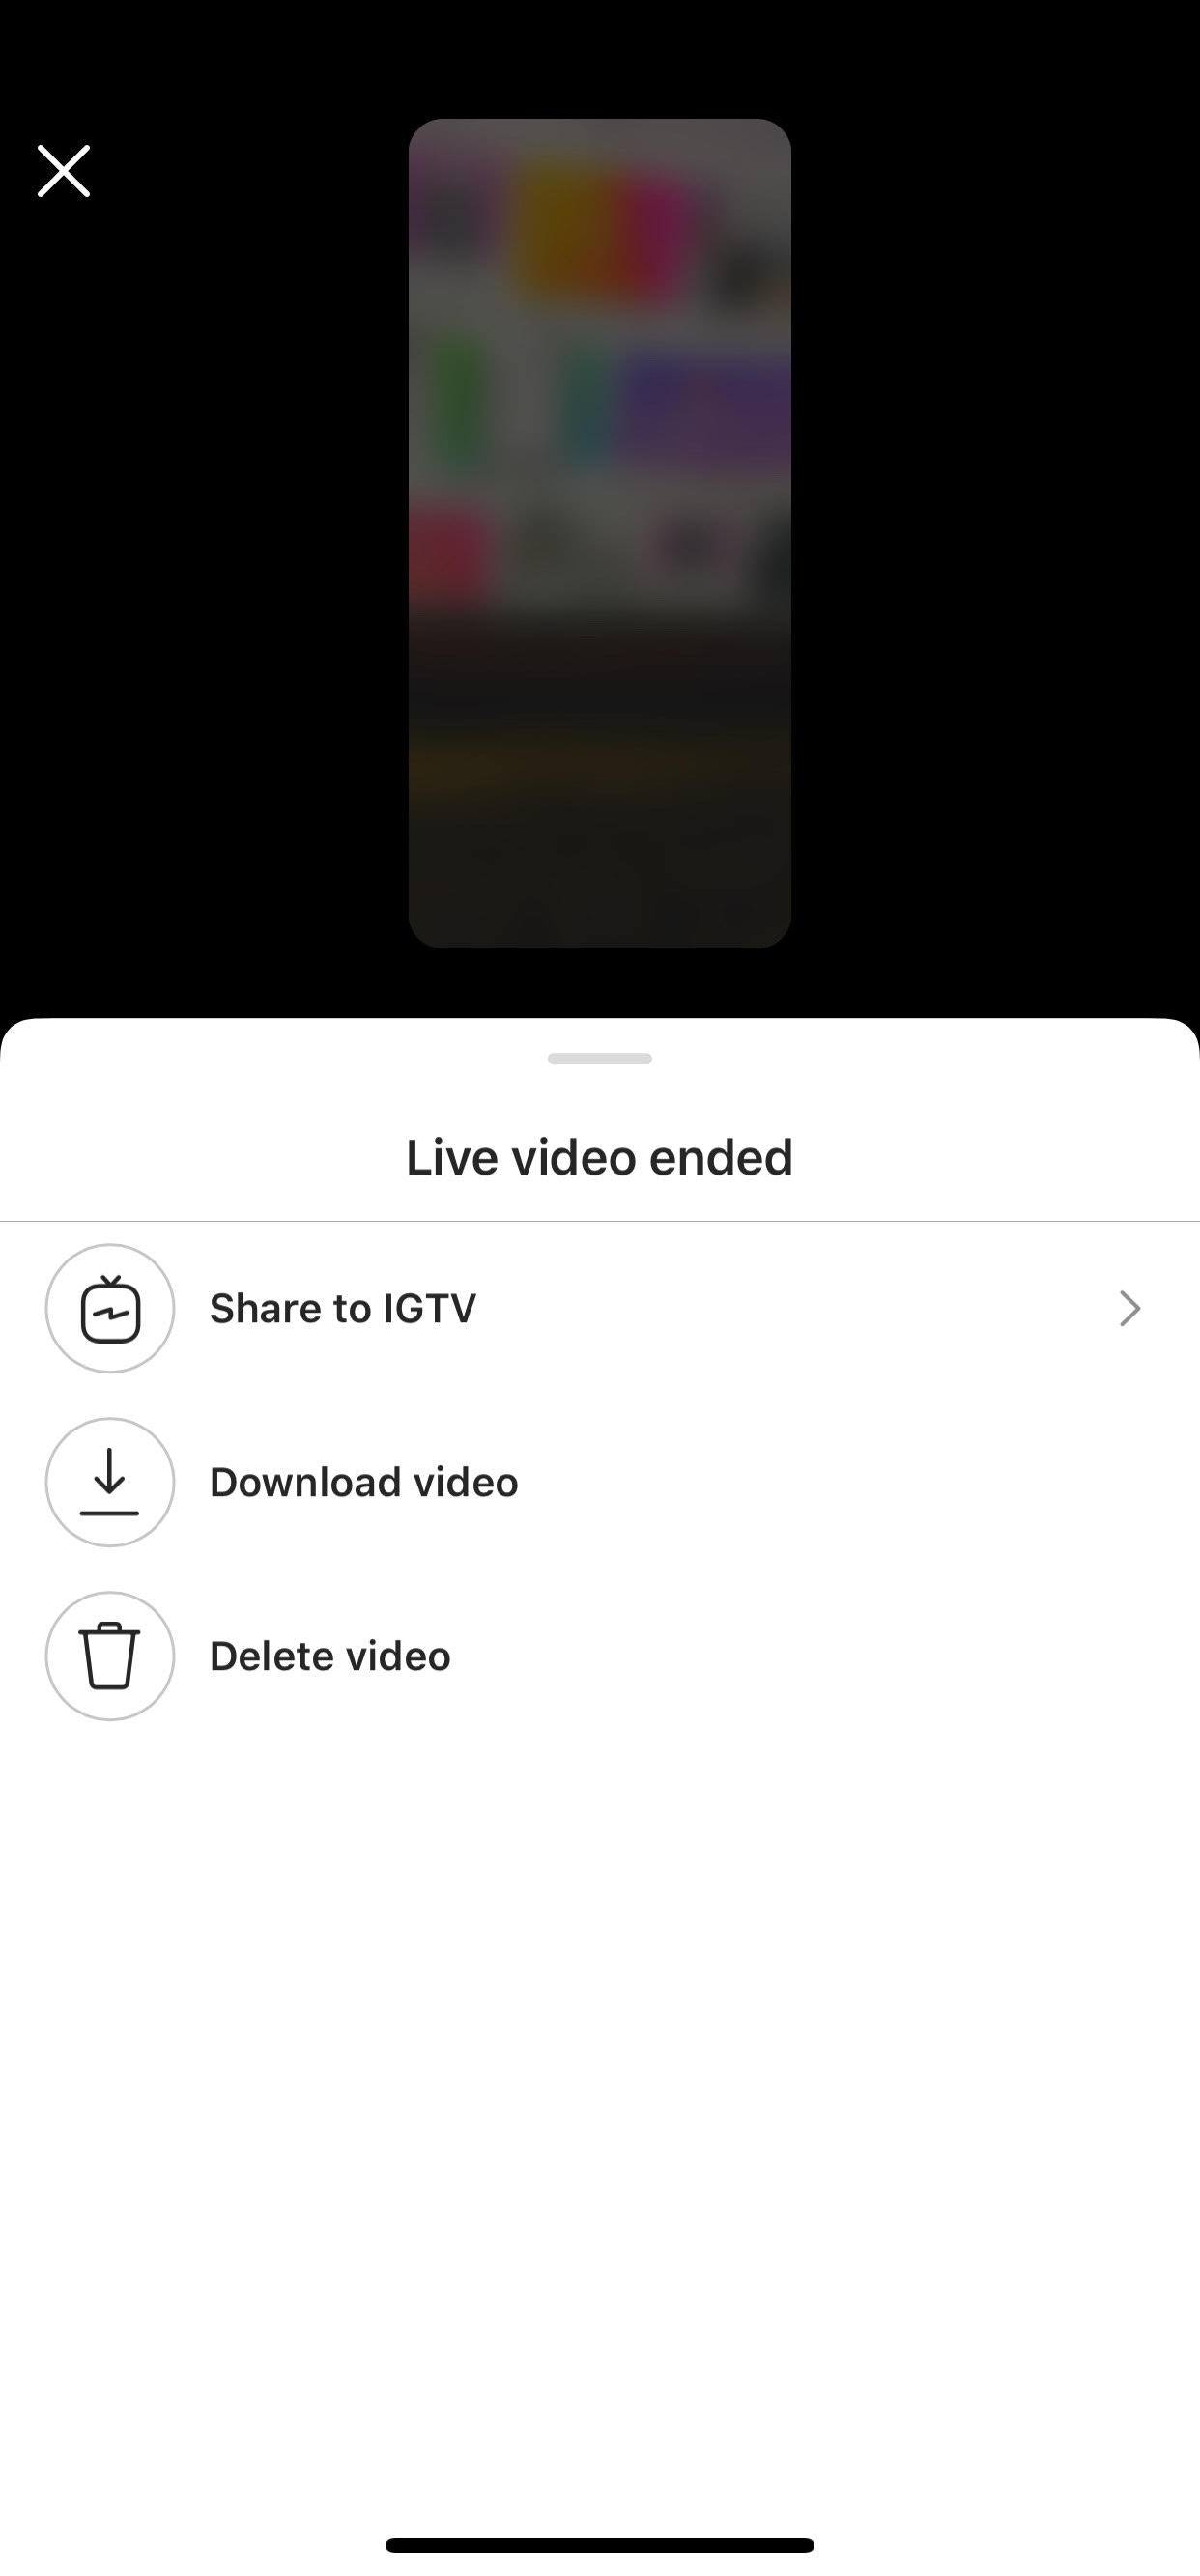 share Instagram live videos to IGTV